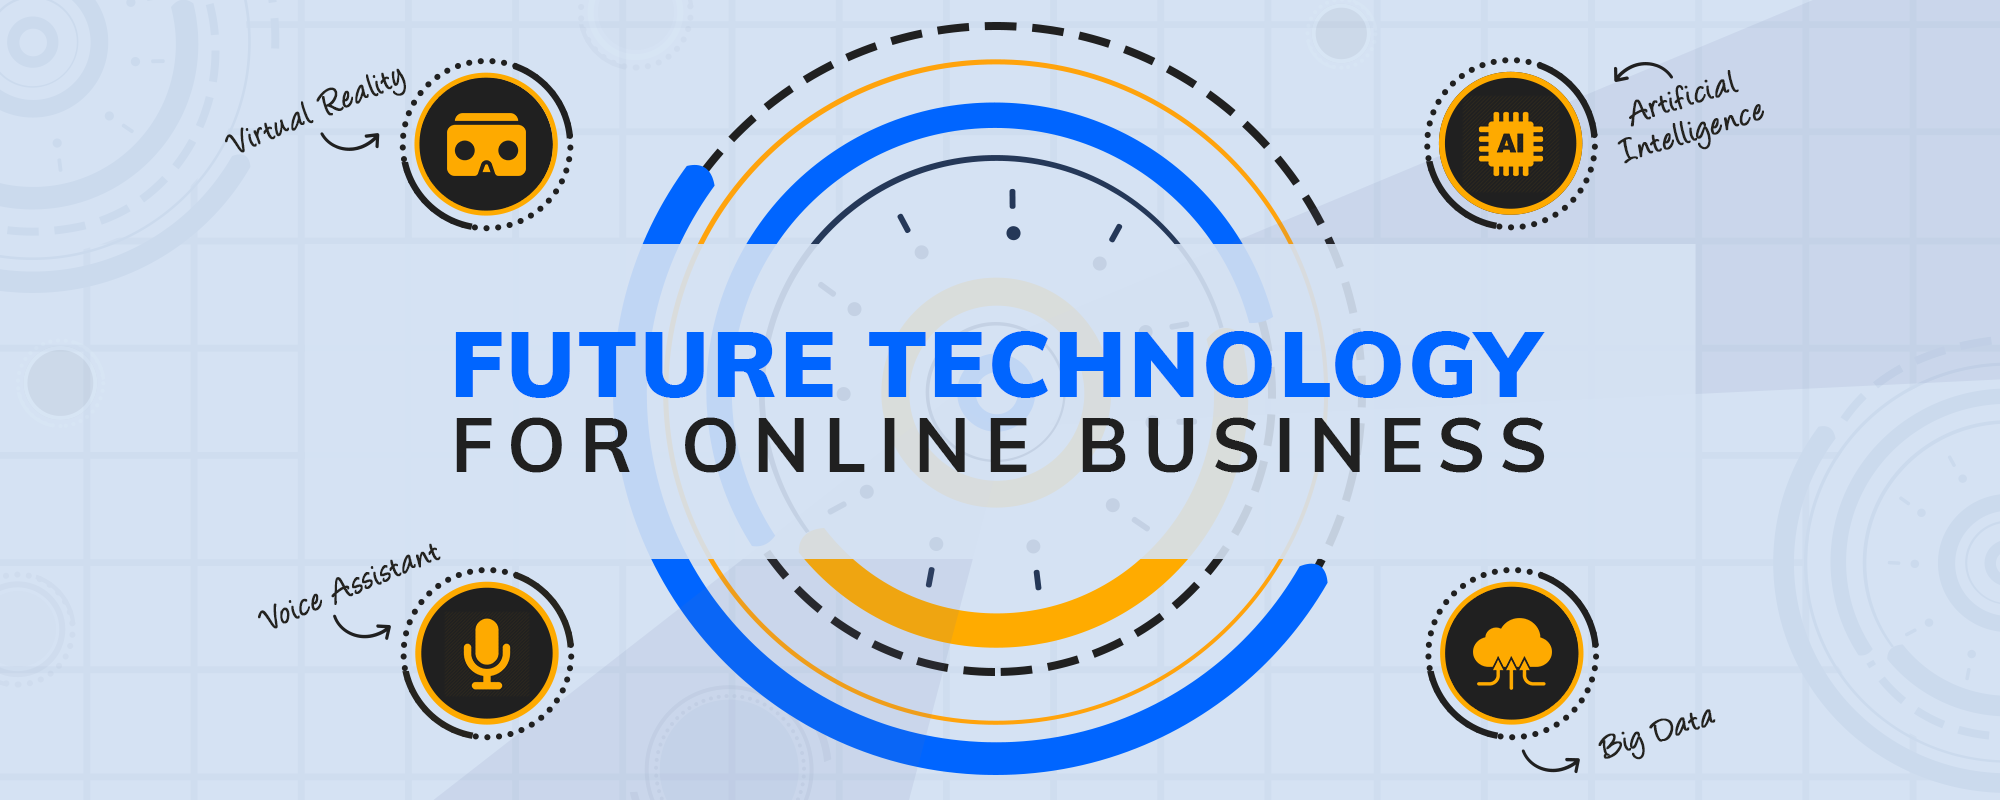 Future Technologies That Will Revolutionize Online Businesses